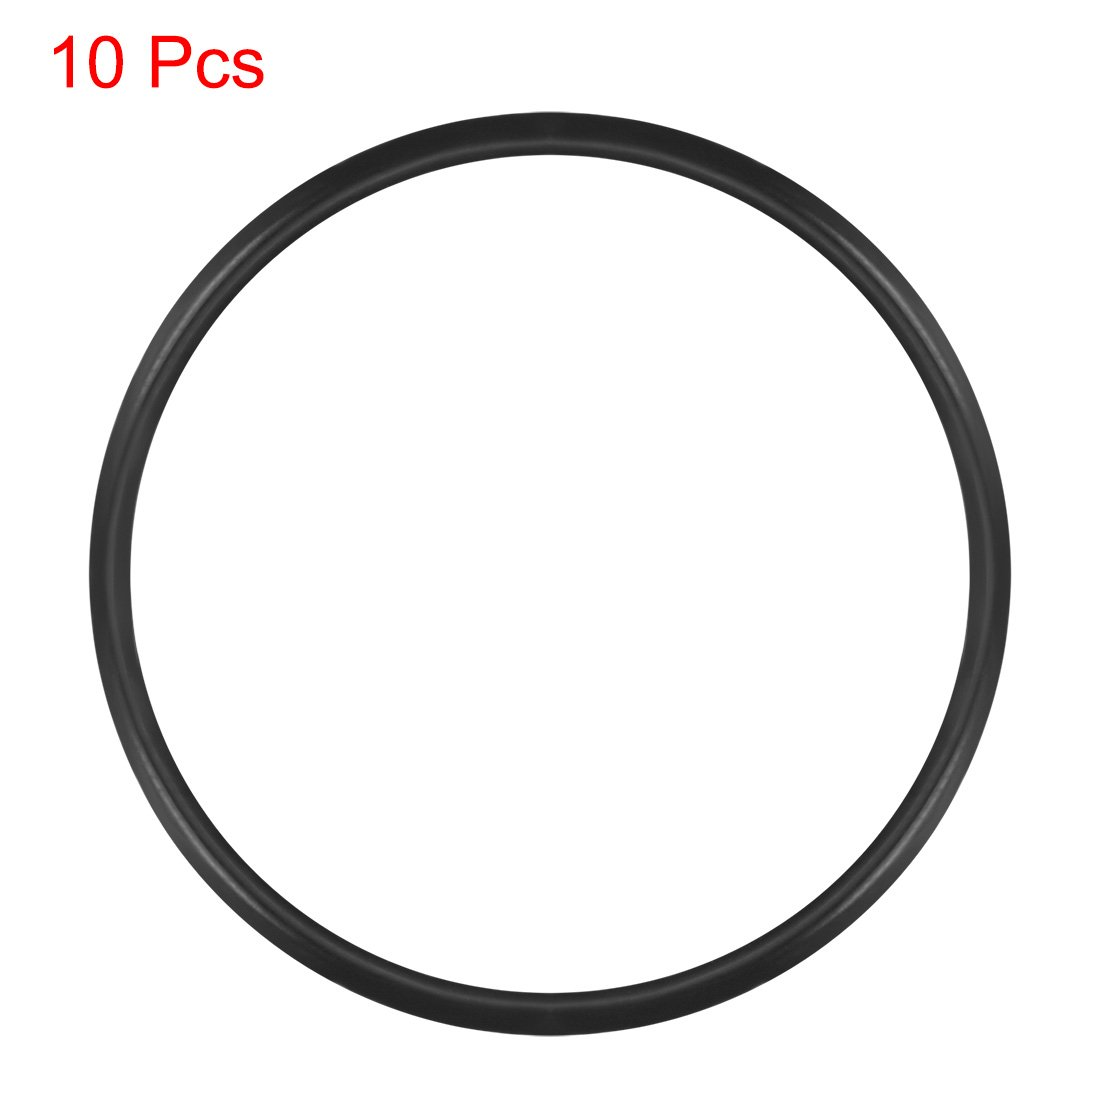 USA Sealing Inc Buna-N O-Ring-4.5mm Wide 92mm ID-Pack of 2